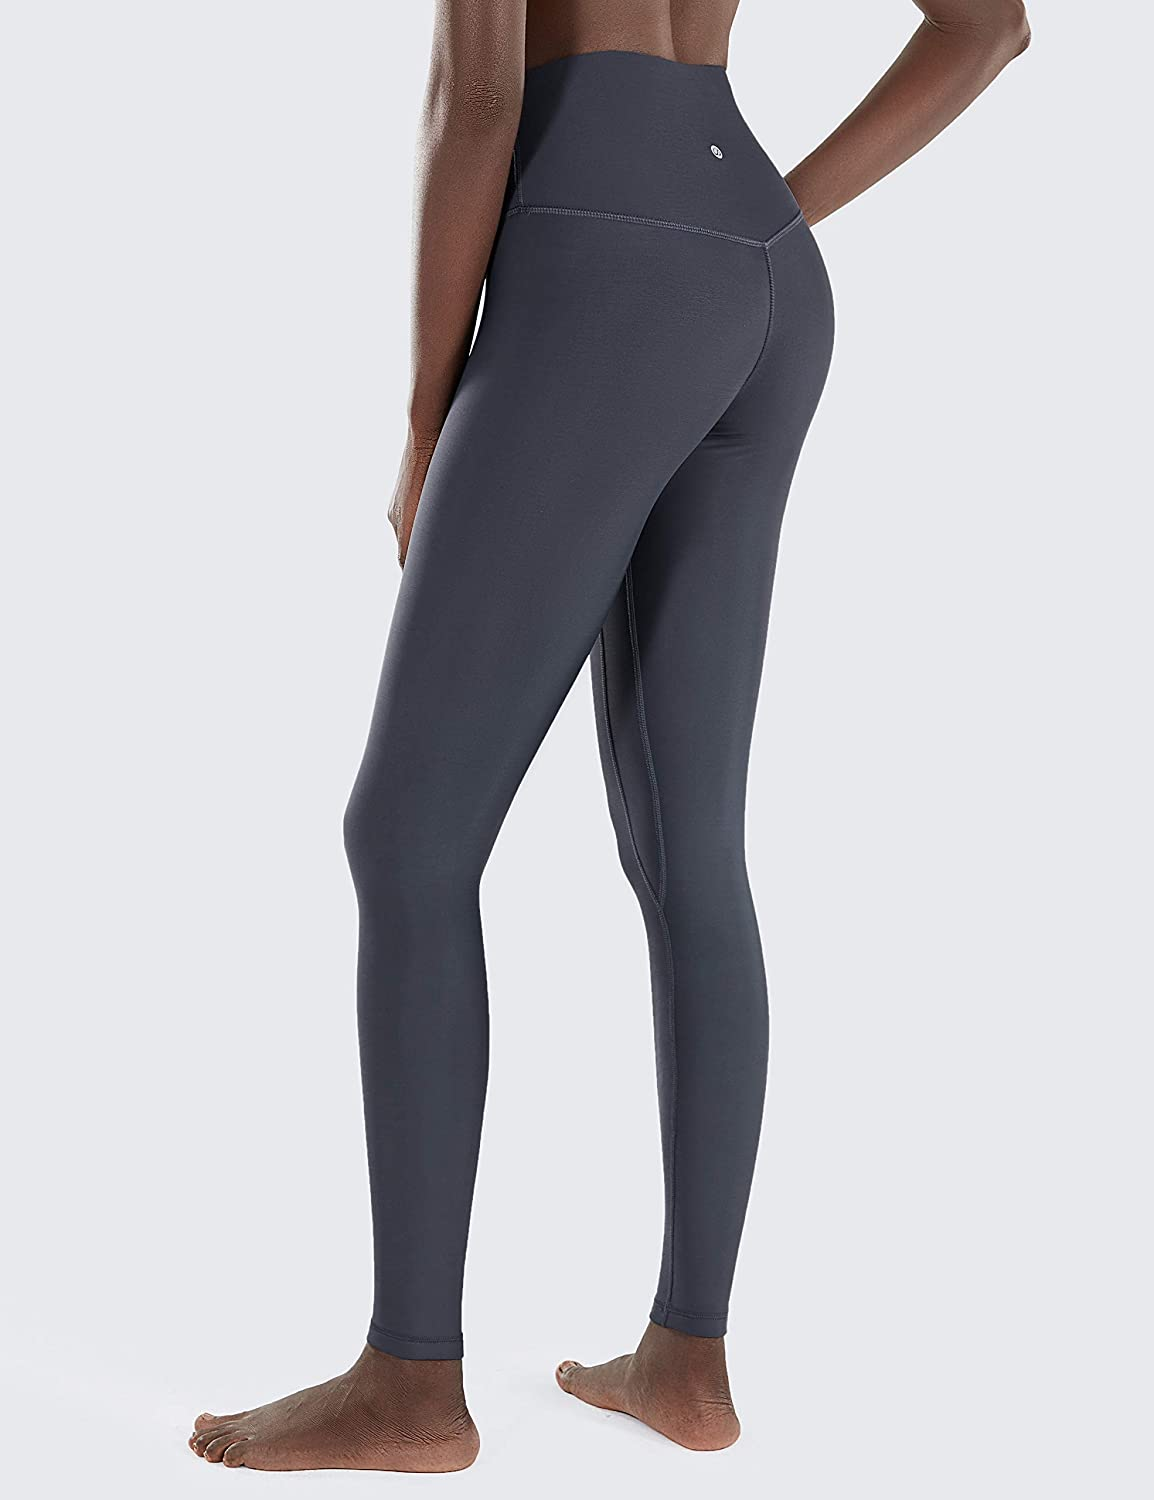 CRZ YOGA Womens Winter Thick Legging Mid-Rise Elastic Sports Warm Pants with Zip Pocket-28 Inches